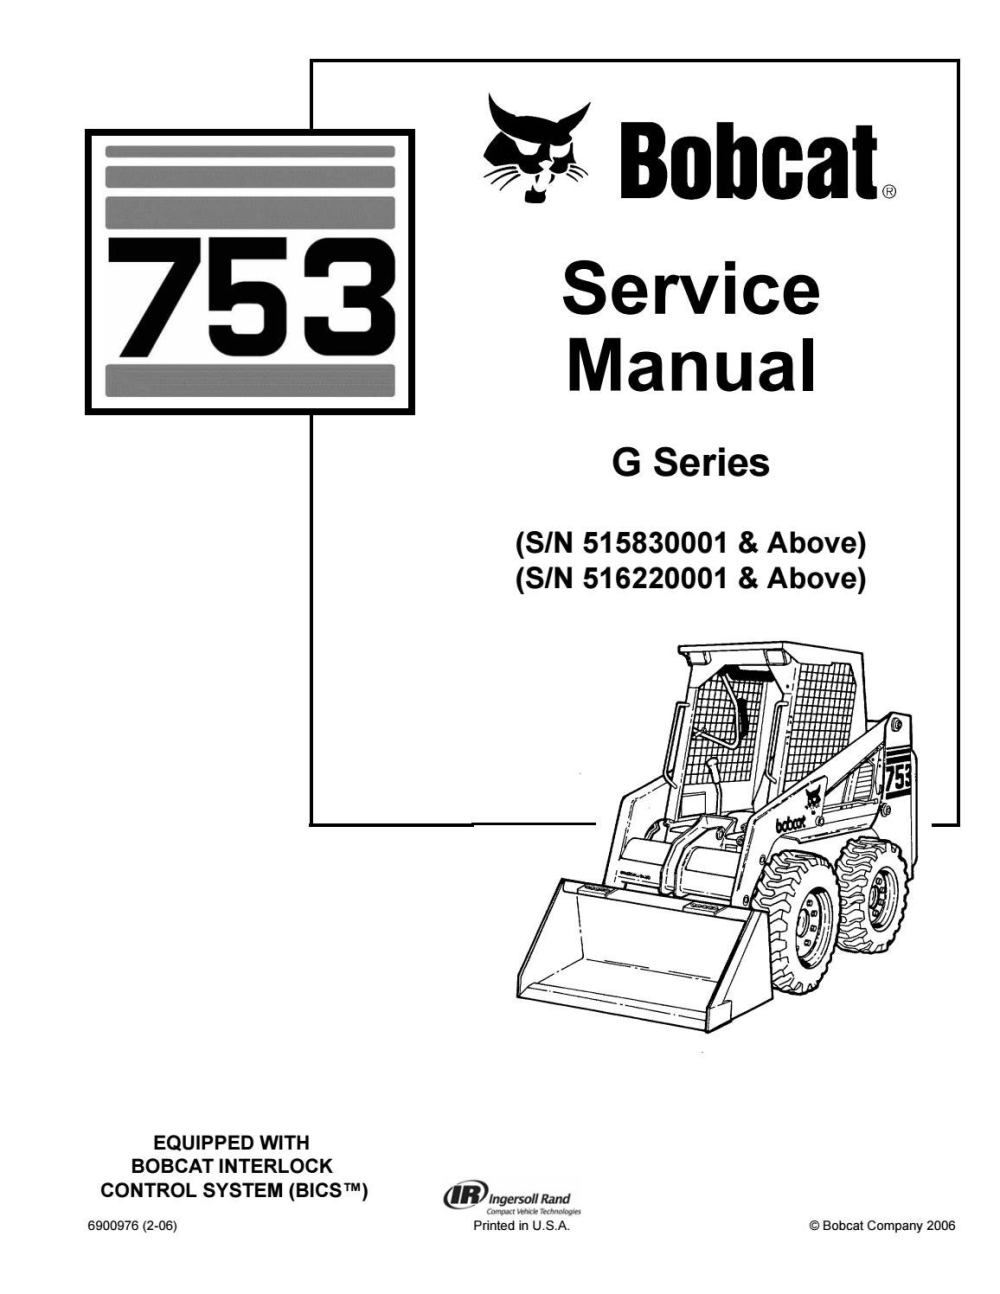 medium resolution of bobcat 753 skid steer loader service repair manual sn 515830001 above sn 516220001 above by 163610 issuu